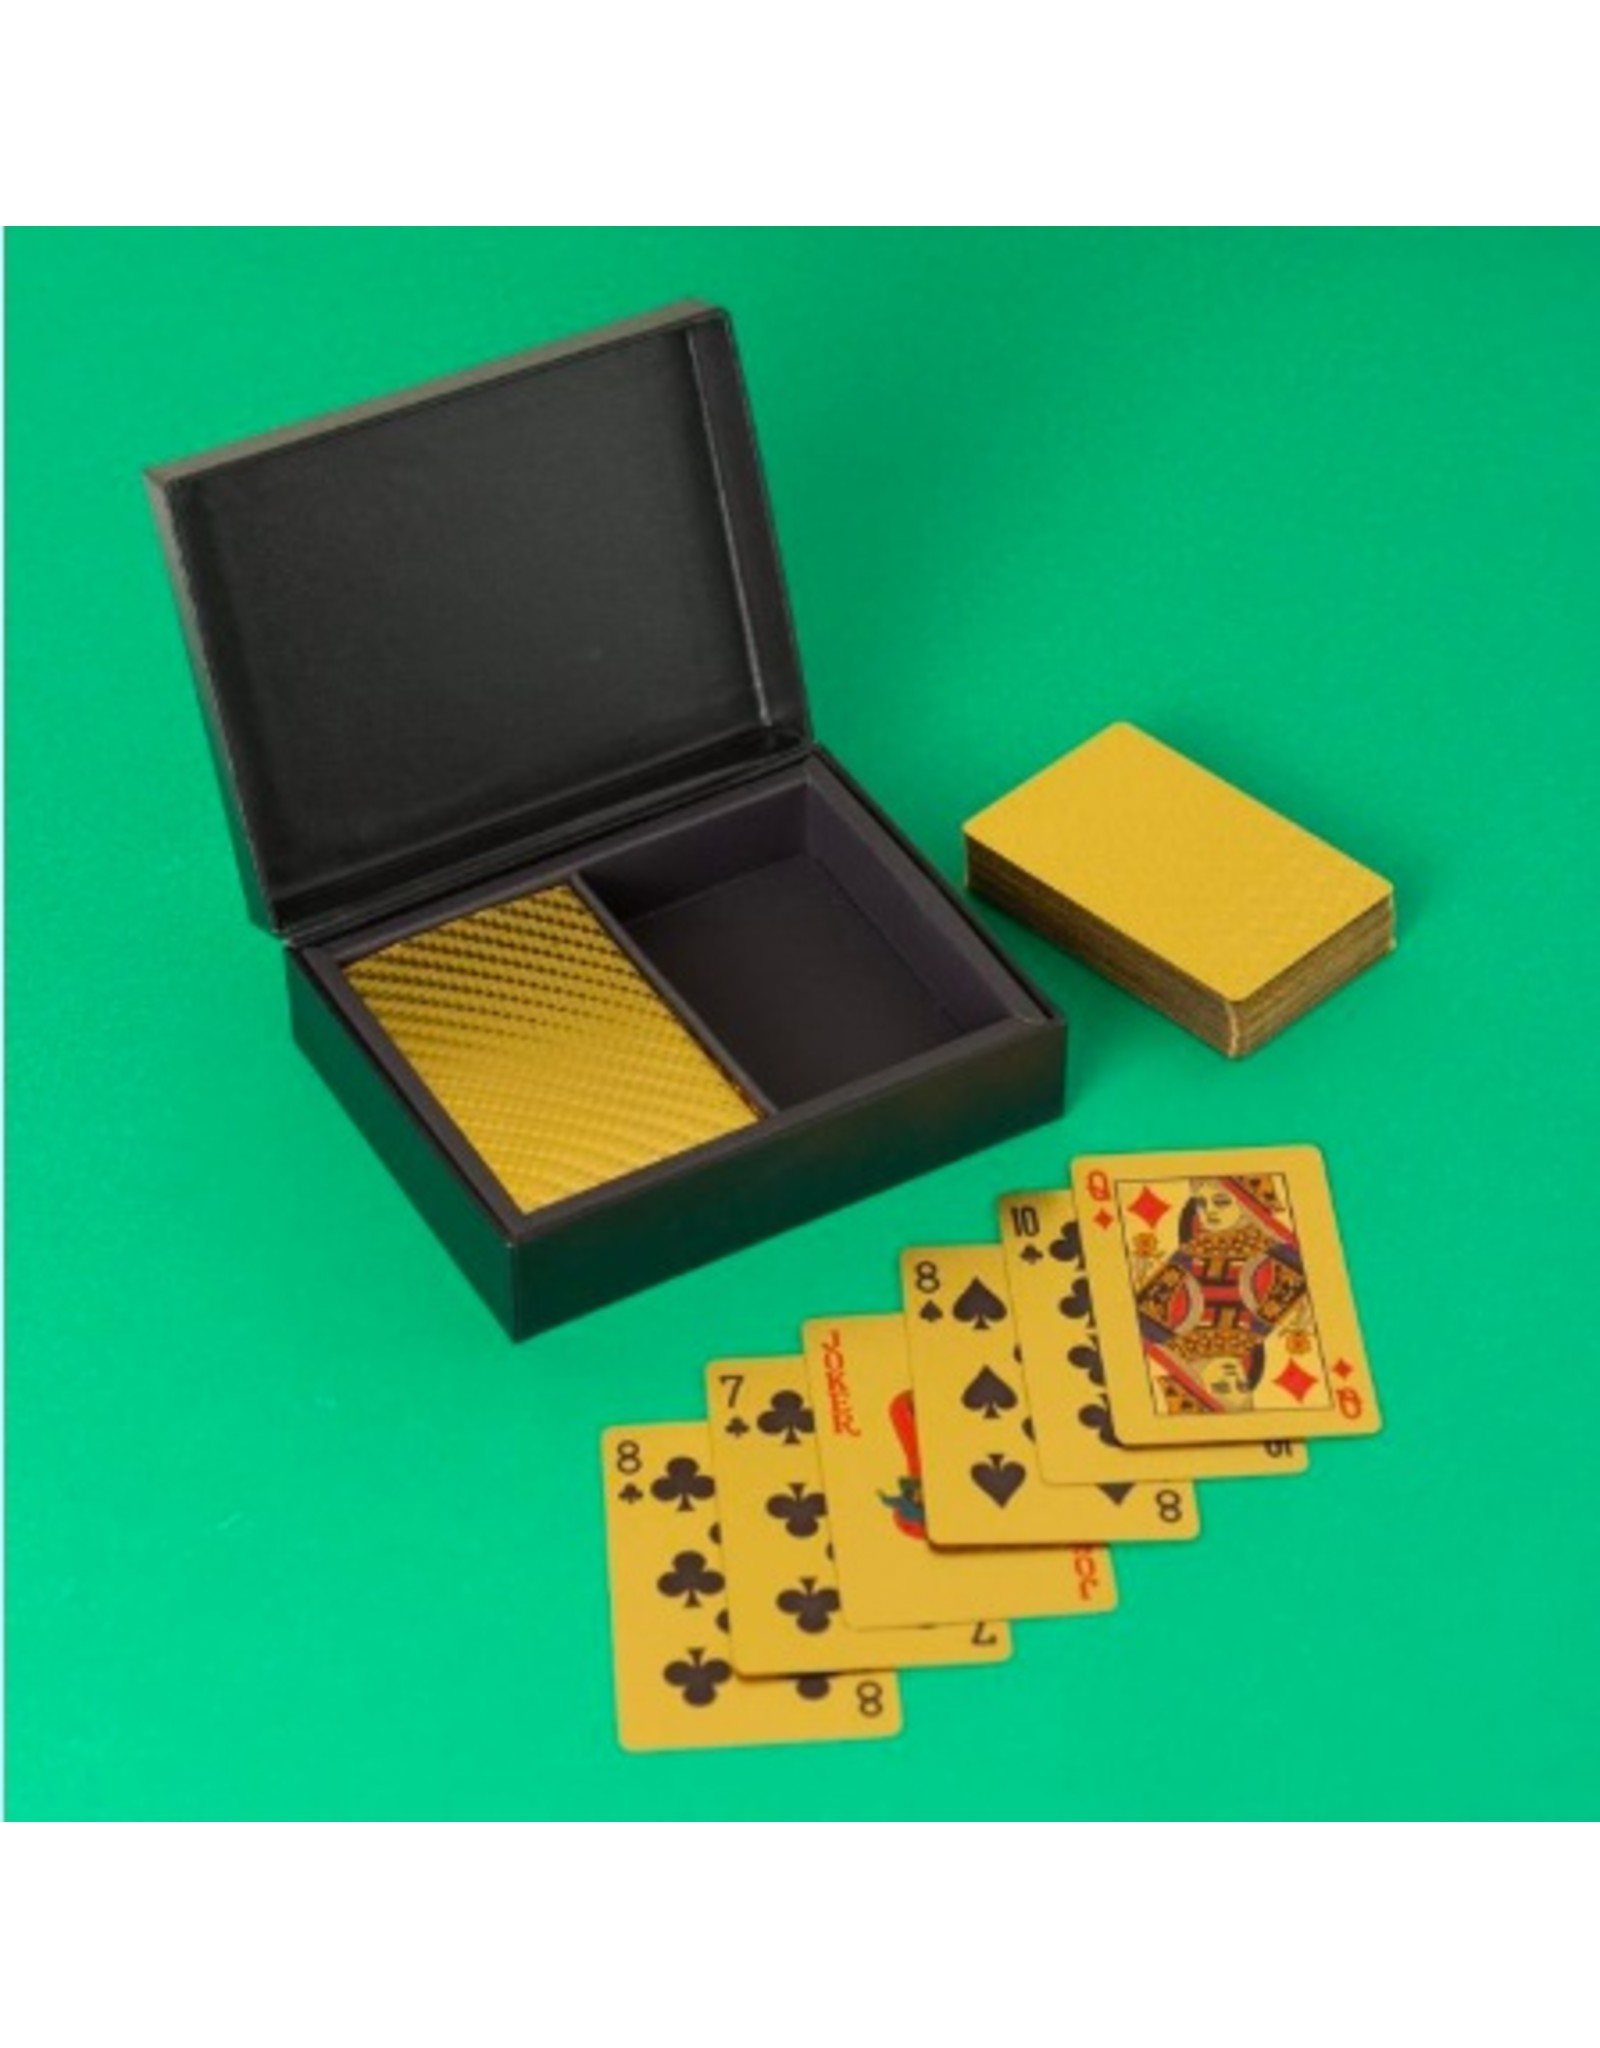 box with 2 packs of playing cards in gold